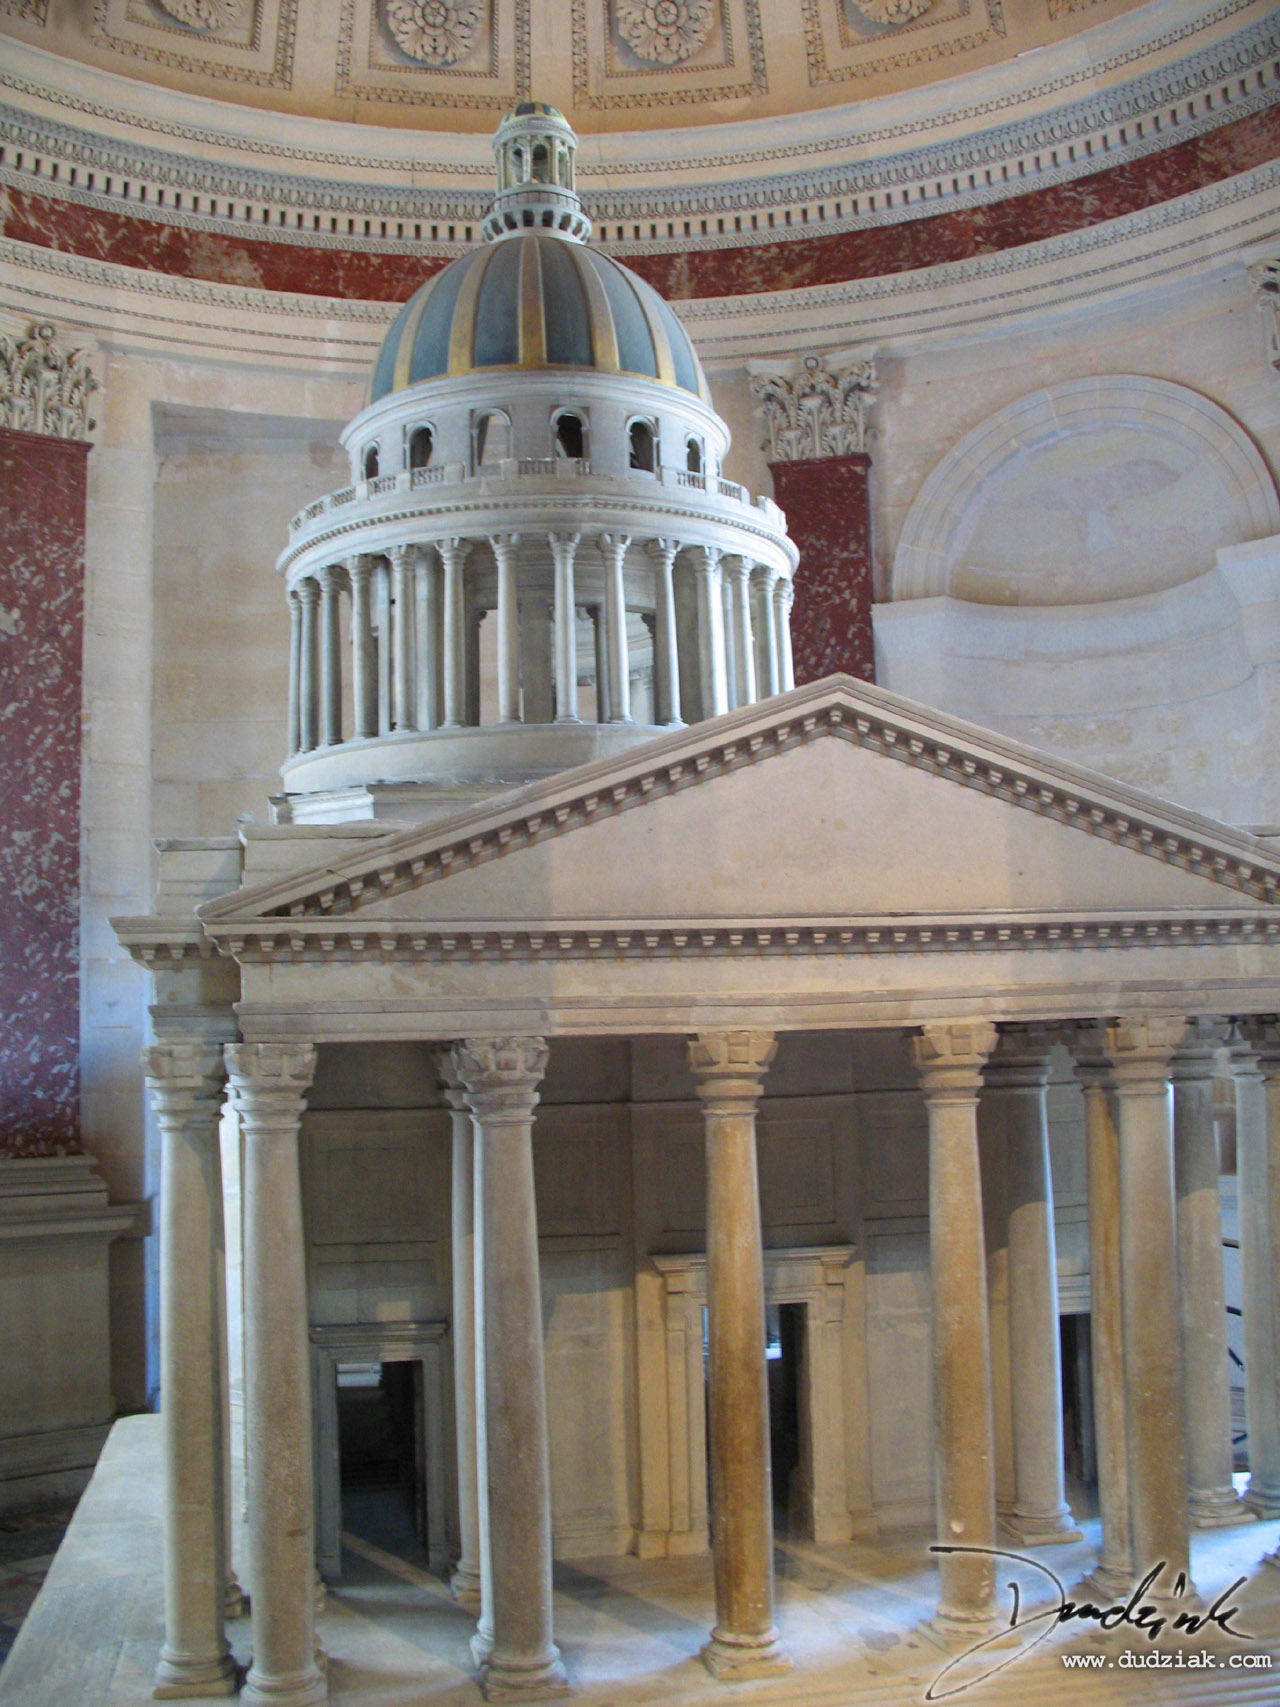 Picture of a model-sized version of the Paris Pantheon within the Paris Pantheon itself.